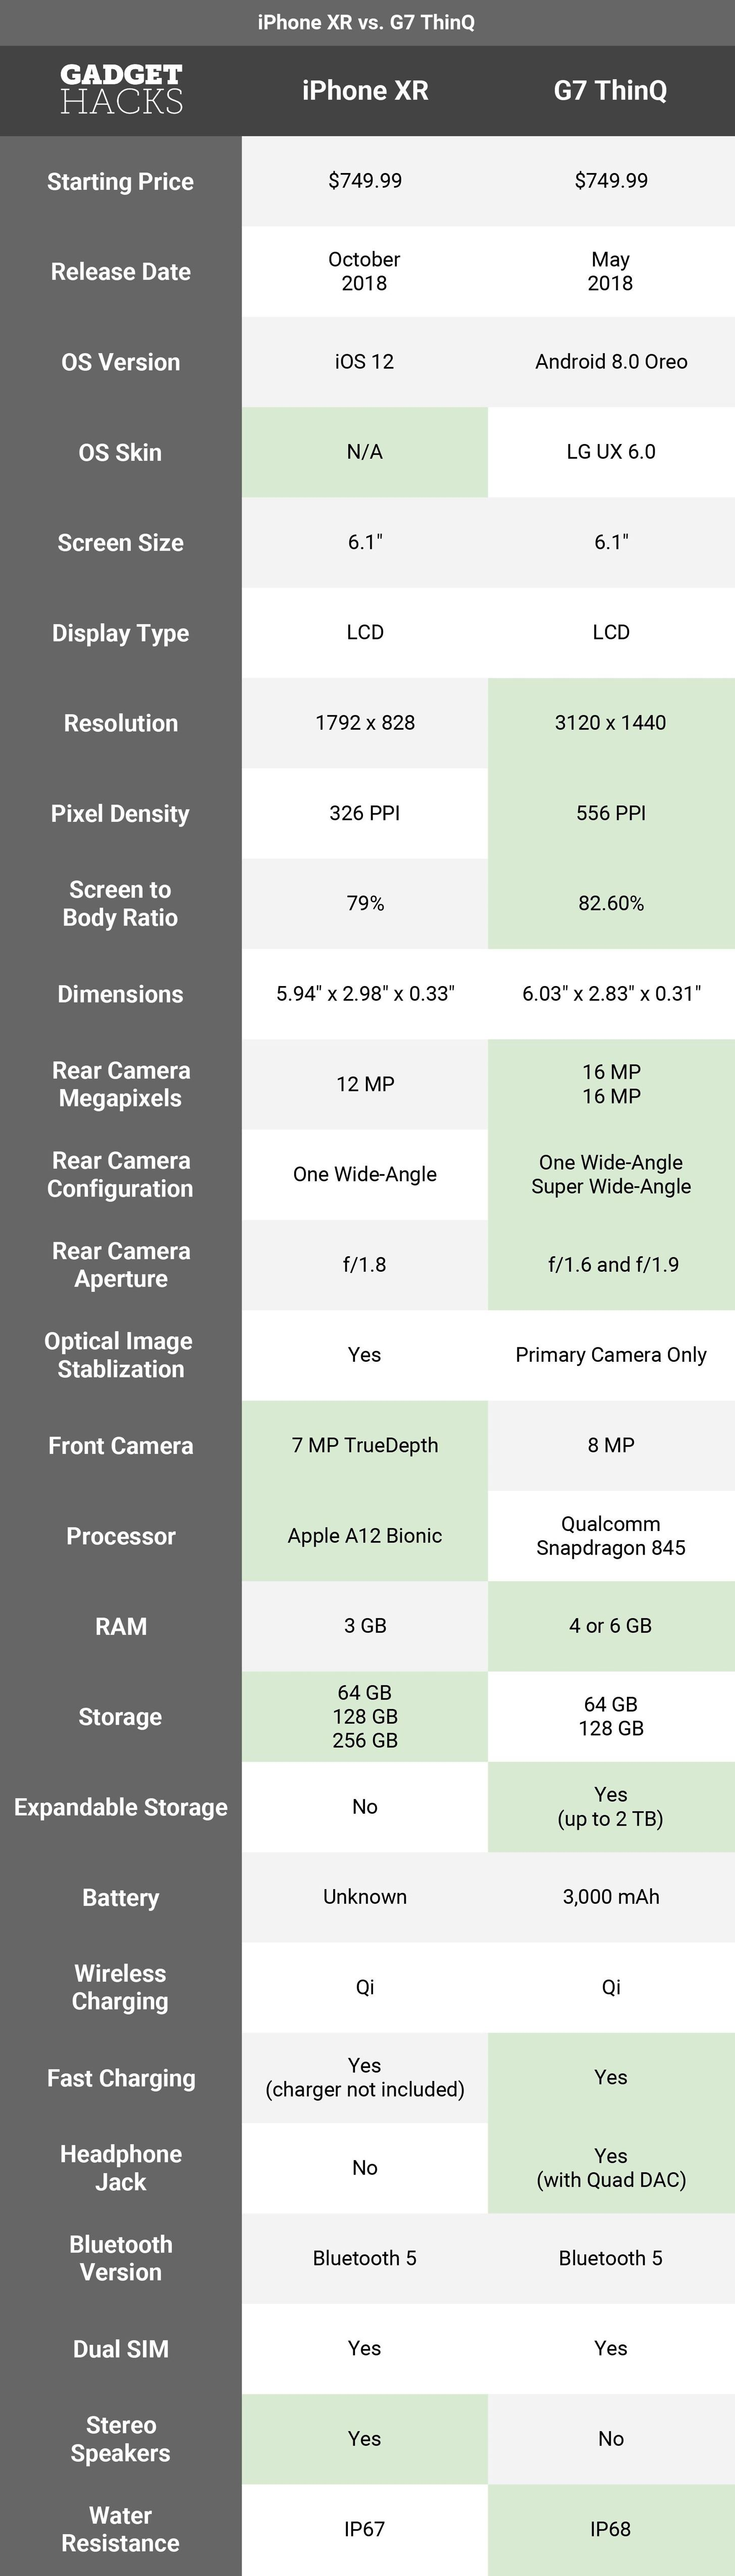 iPhone XR vs LG G7 ThinQ: Same Price, Same Screen Size, but Vastly Different Overall